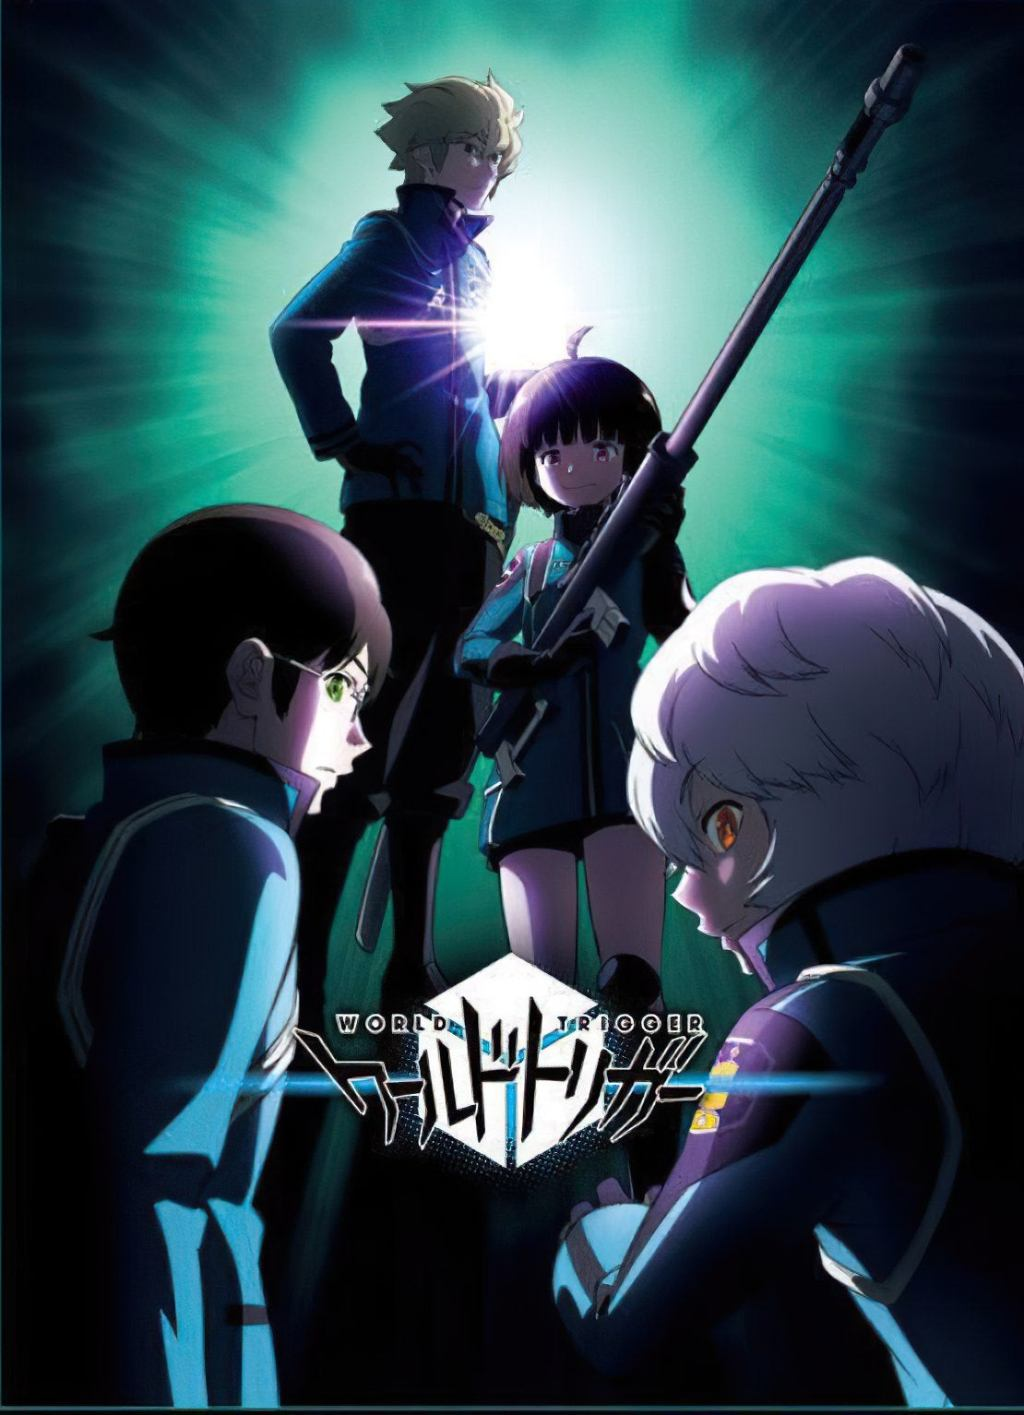 New Key Visual for World Trigger Season 3 TV Anime Revealed. The anime will premiere on October 9, 2021.